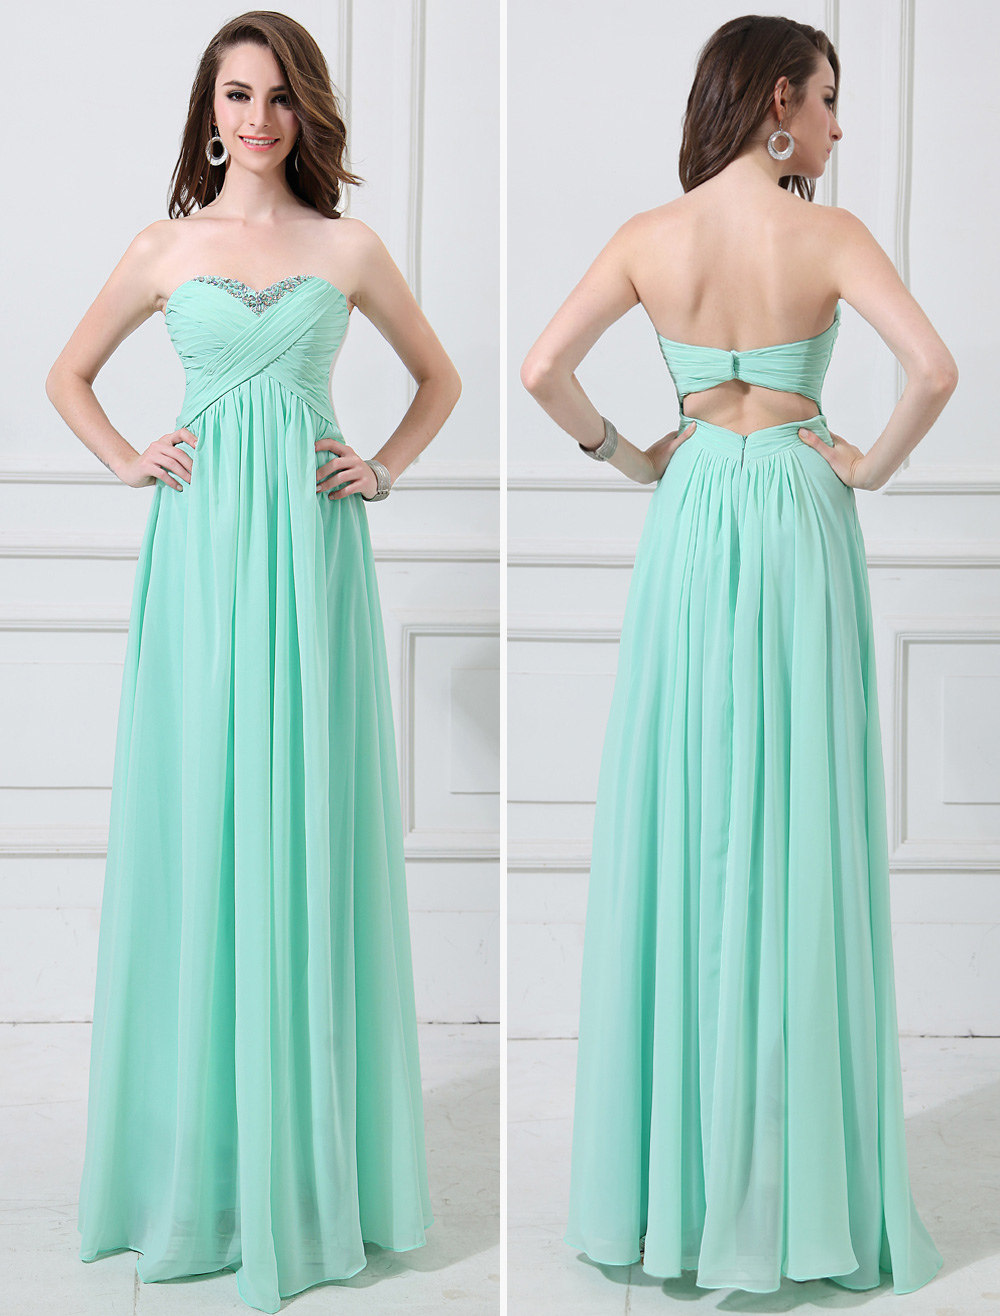 Buy Chiffon Evening Dress Mint Green Sweetheart Beaded Prom Dress Strapless Sleeveless Pleated A Line Floor Length Party Dress for $101.99 in Milanoo store